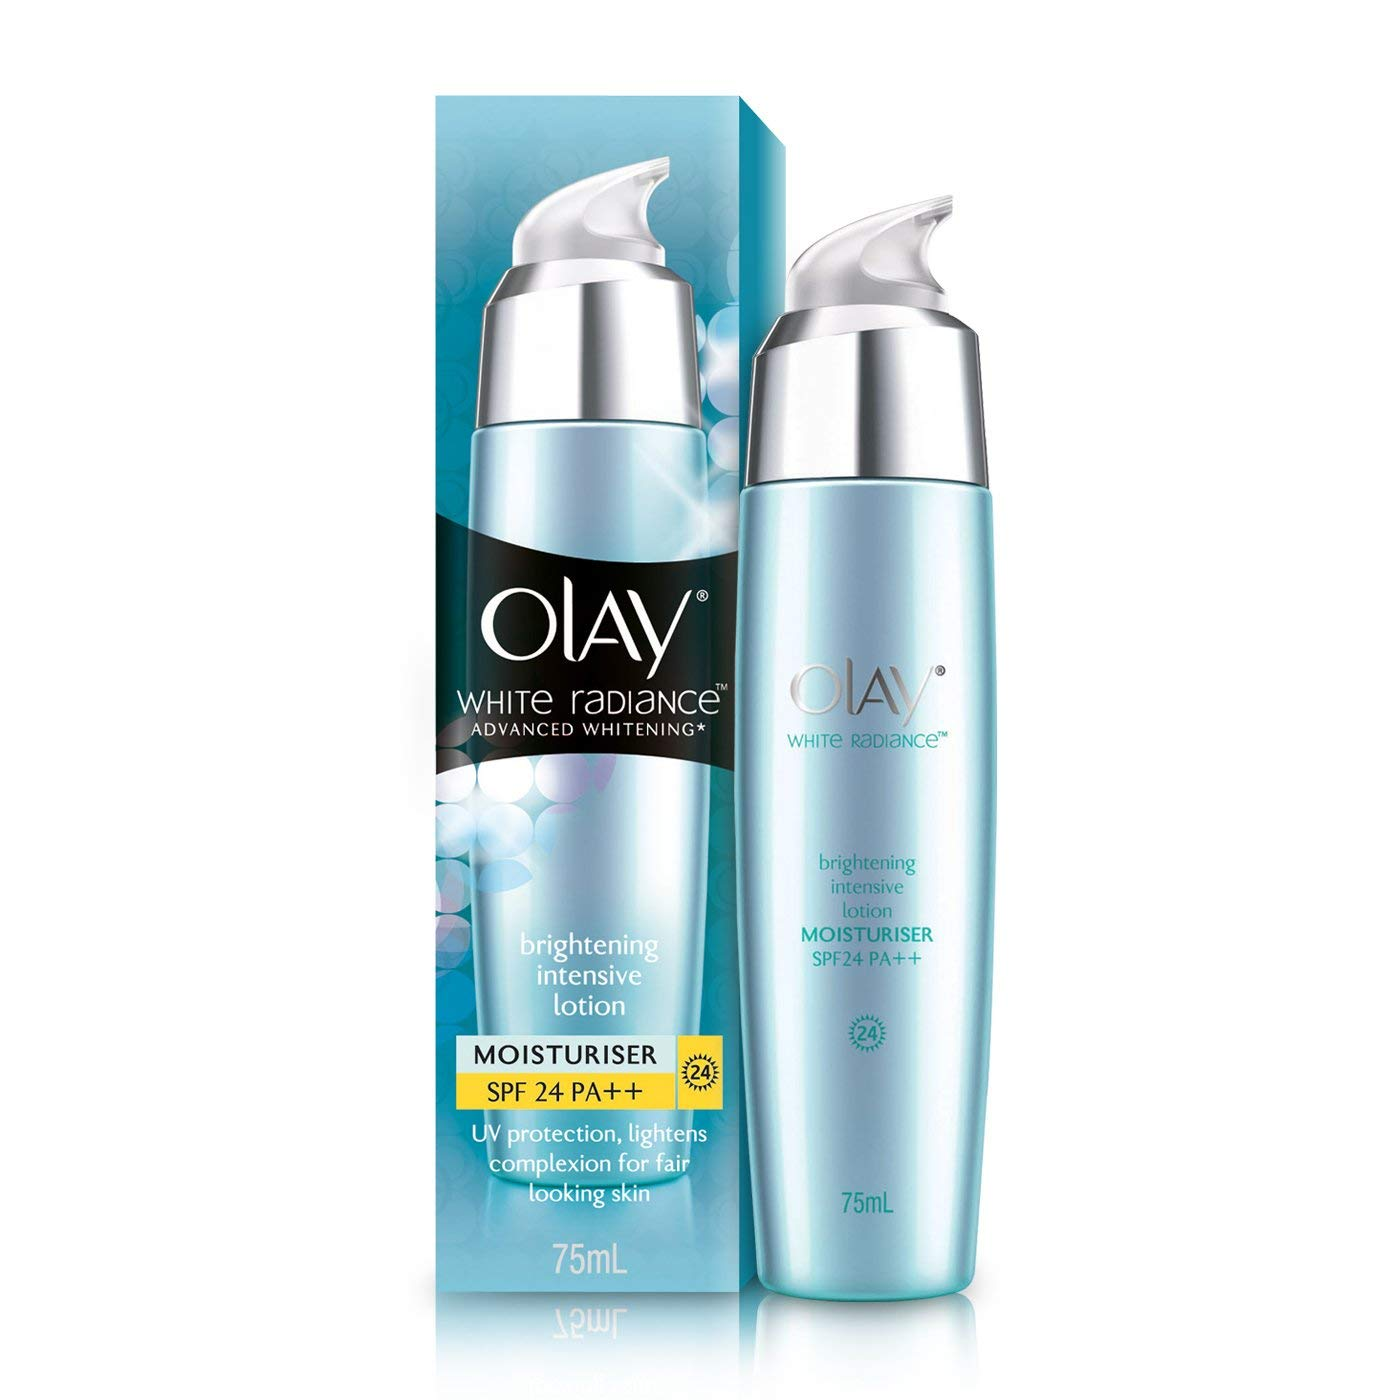 Olay White Radiance Brightening Intensive Lotion Moisturizer 75ml